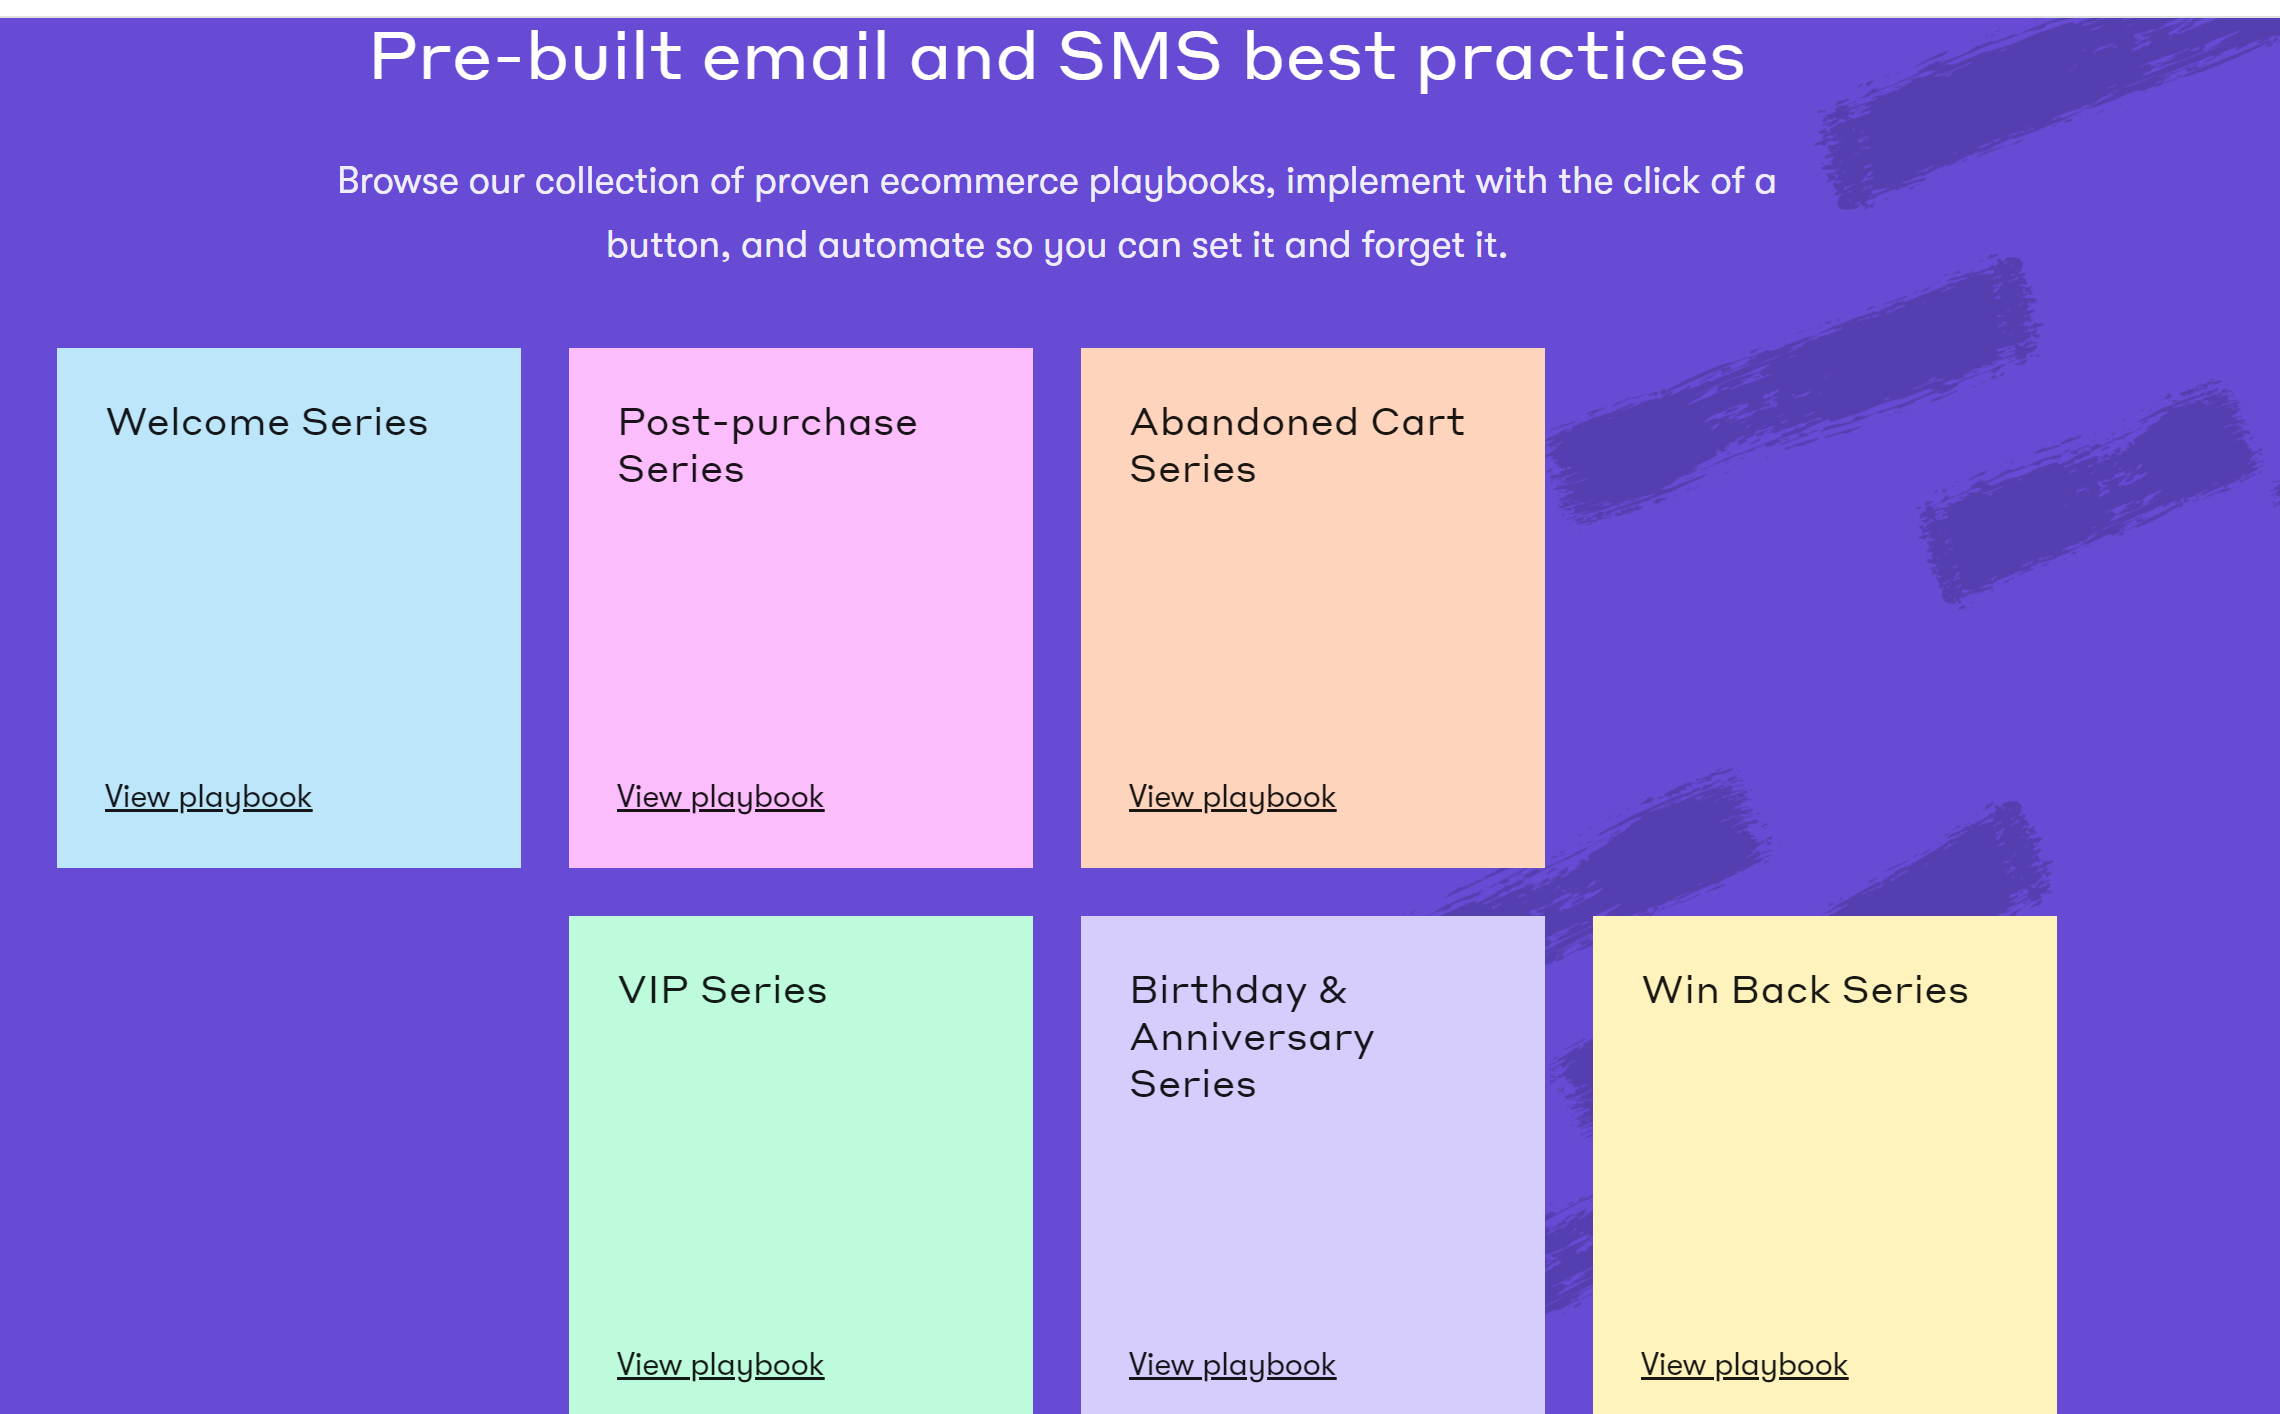 Drip prebuilt email and SMS